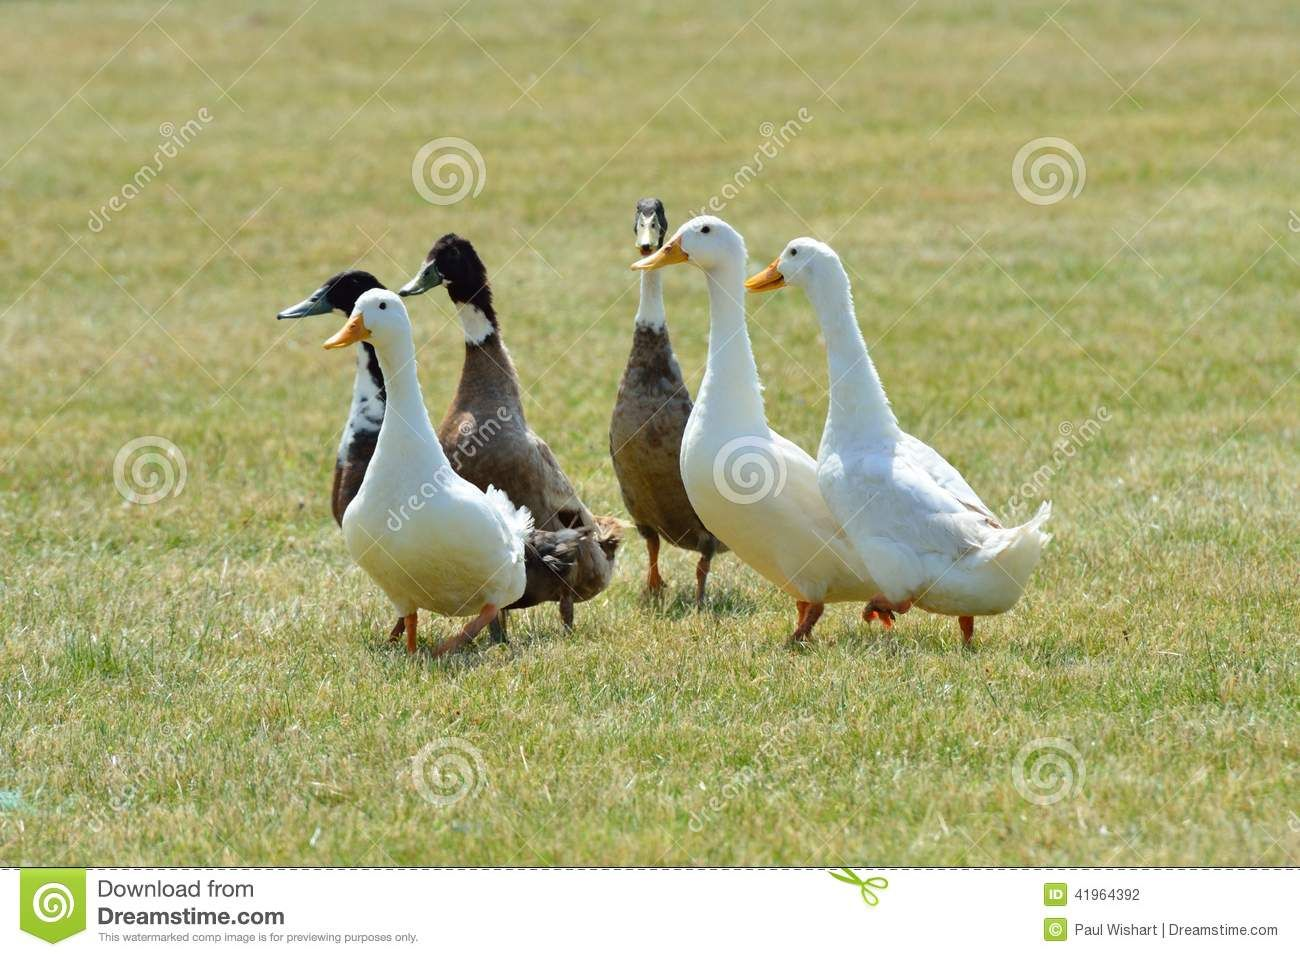 Image Result For Images Group Of Ducks Animals Images Cute Animals Animals